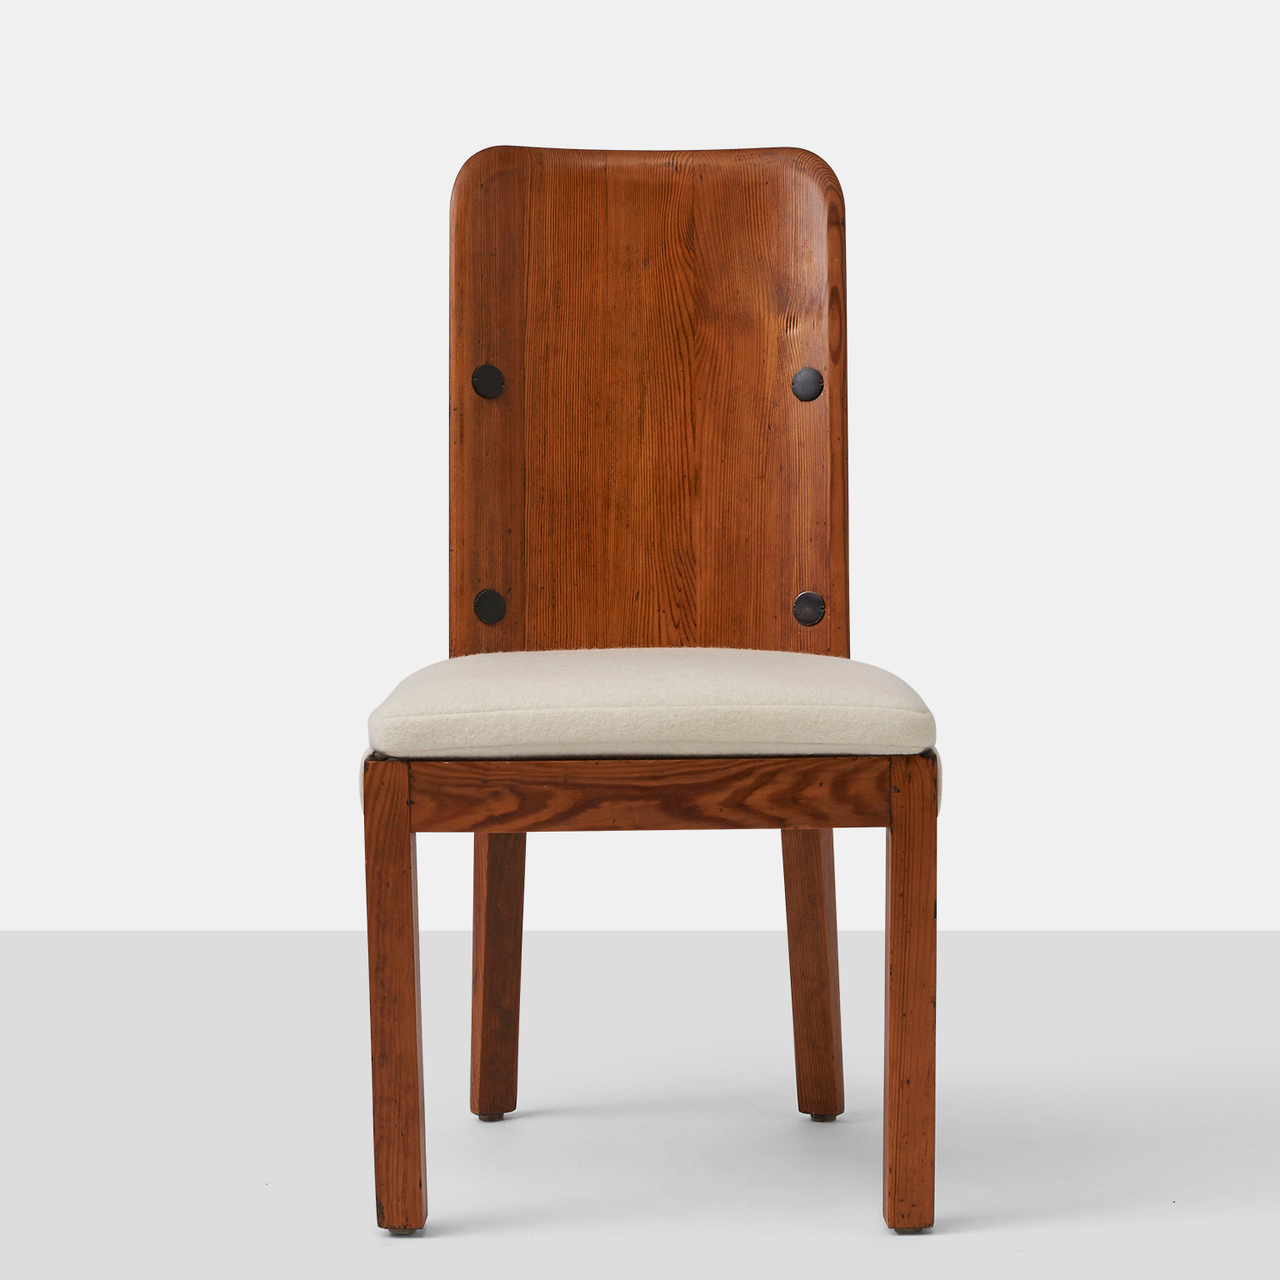 Axel einar hjorth lovo dining chairs almond and company for Sofa chair company